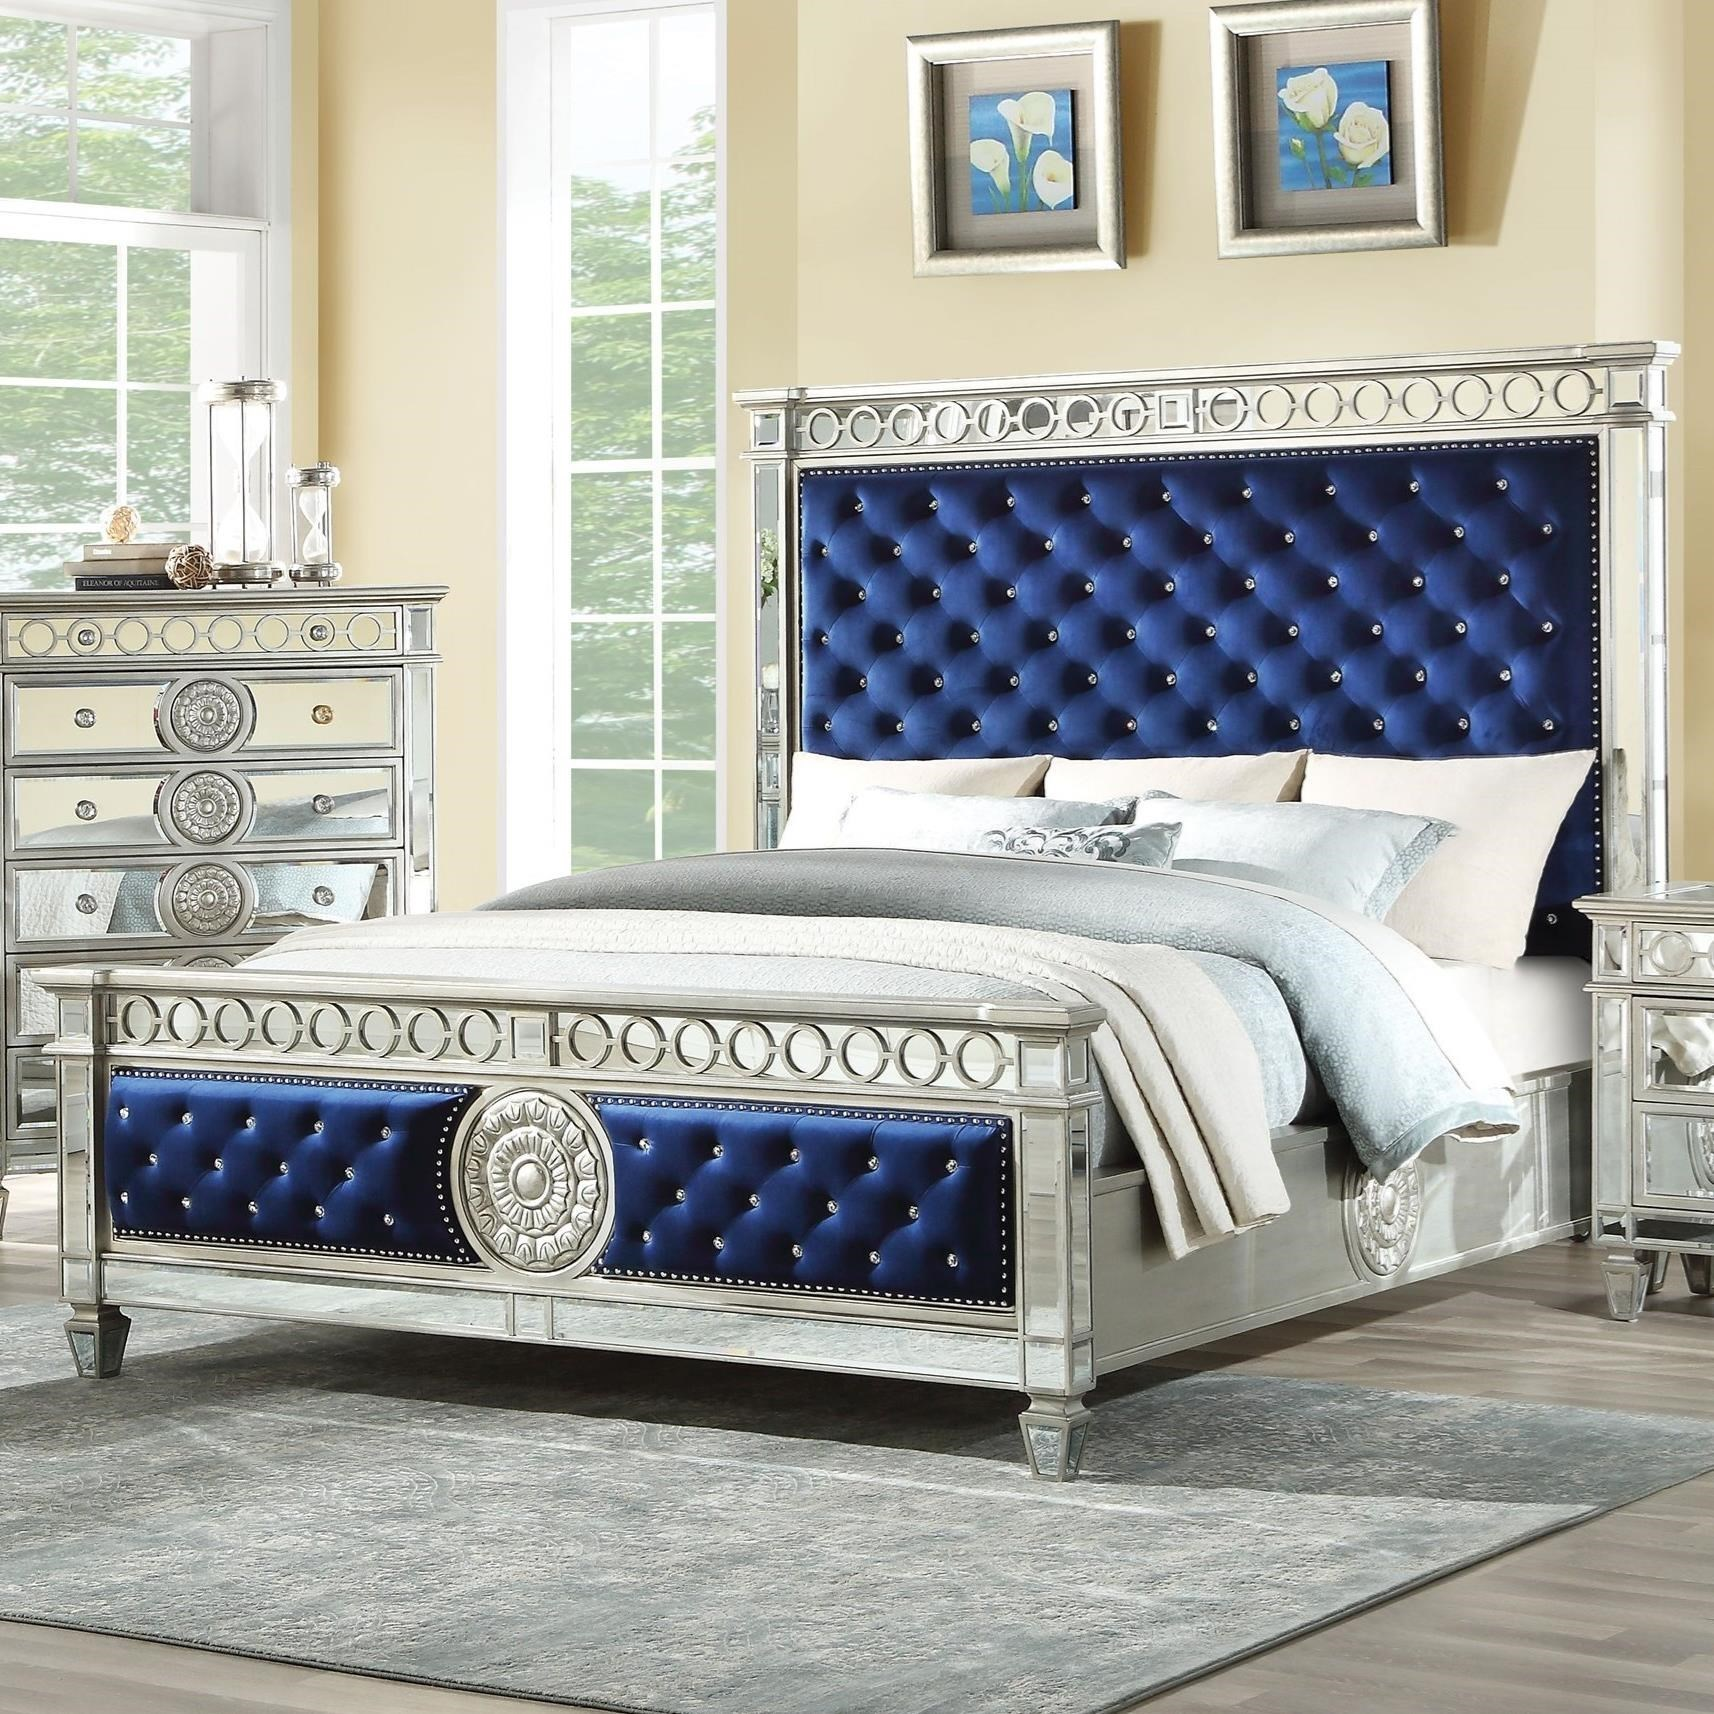 Acme Furniture Varian Glam Tufted California King Bed With Mirror Trim And Blue Velvet Upholstery A1 Furniture Mattress Upholstered Beds